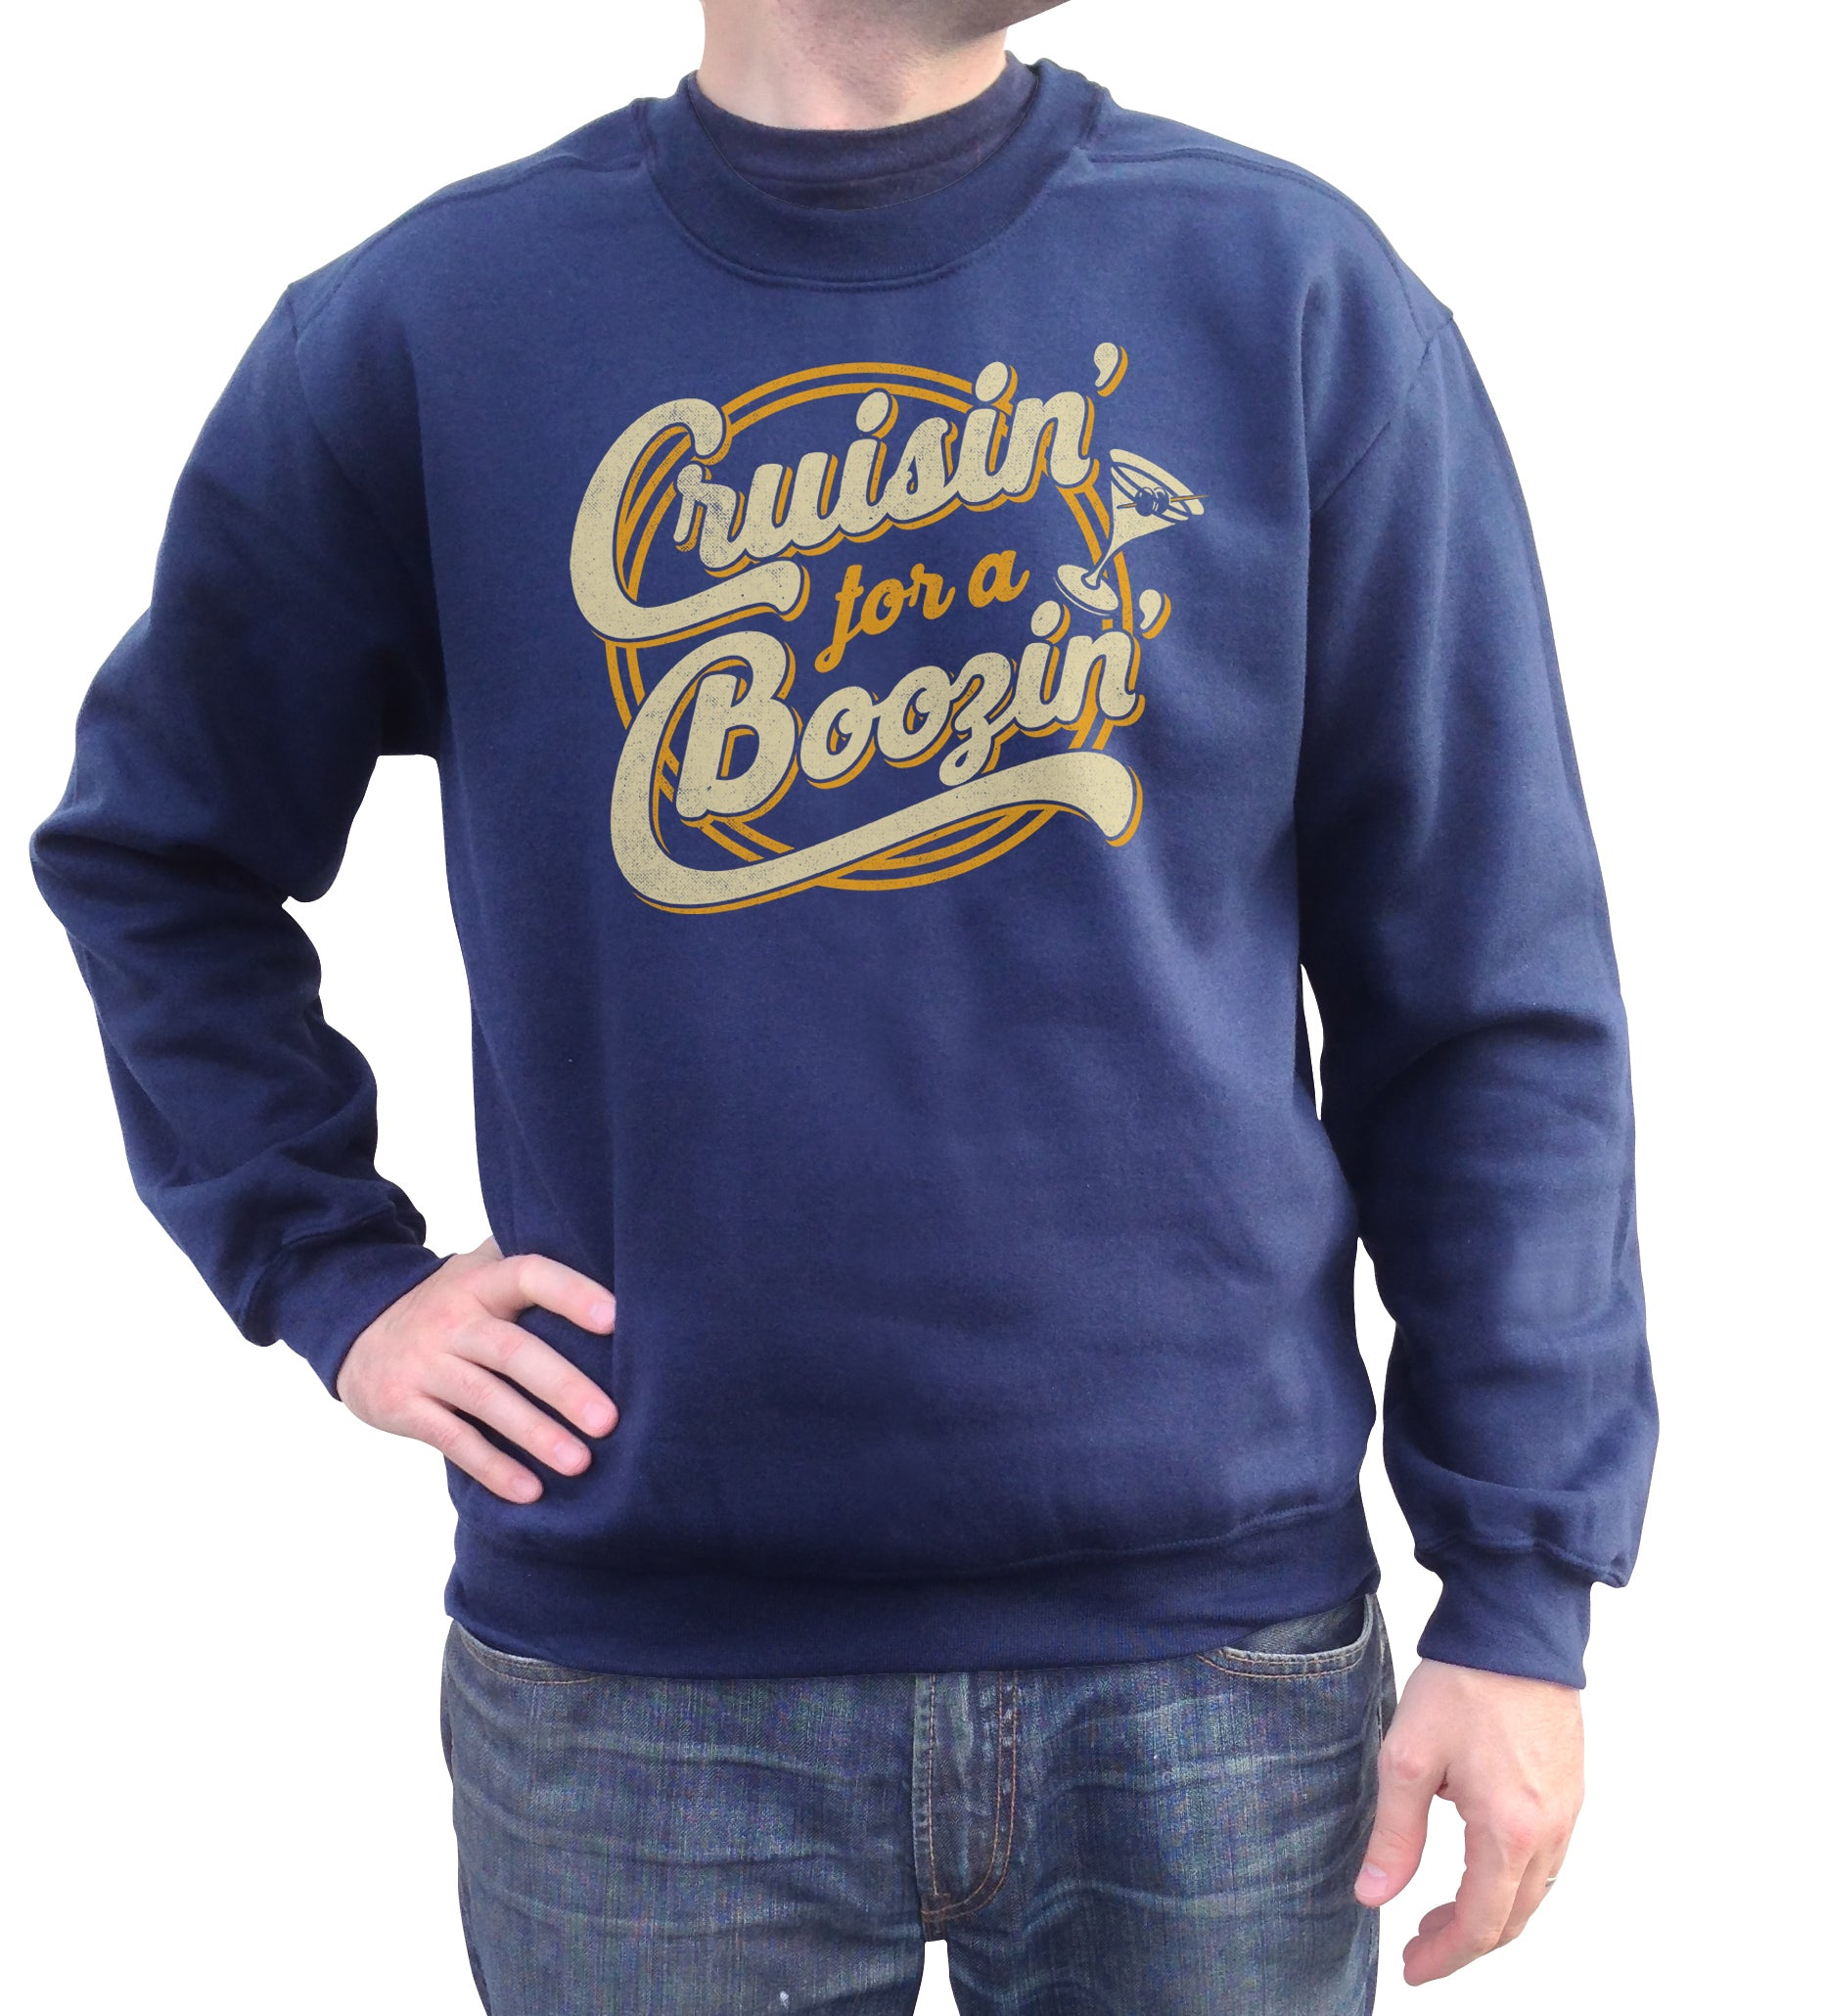 Unisex Cruisin for a Boozin Sweatshirt - Funny Drinking Shirt